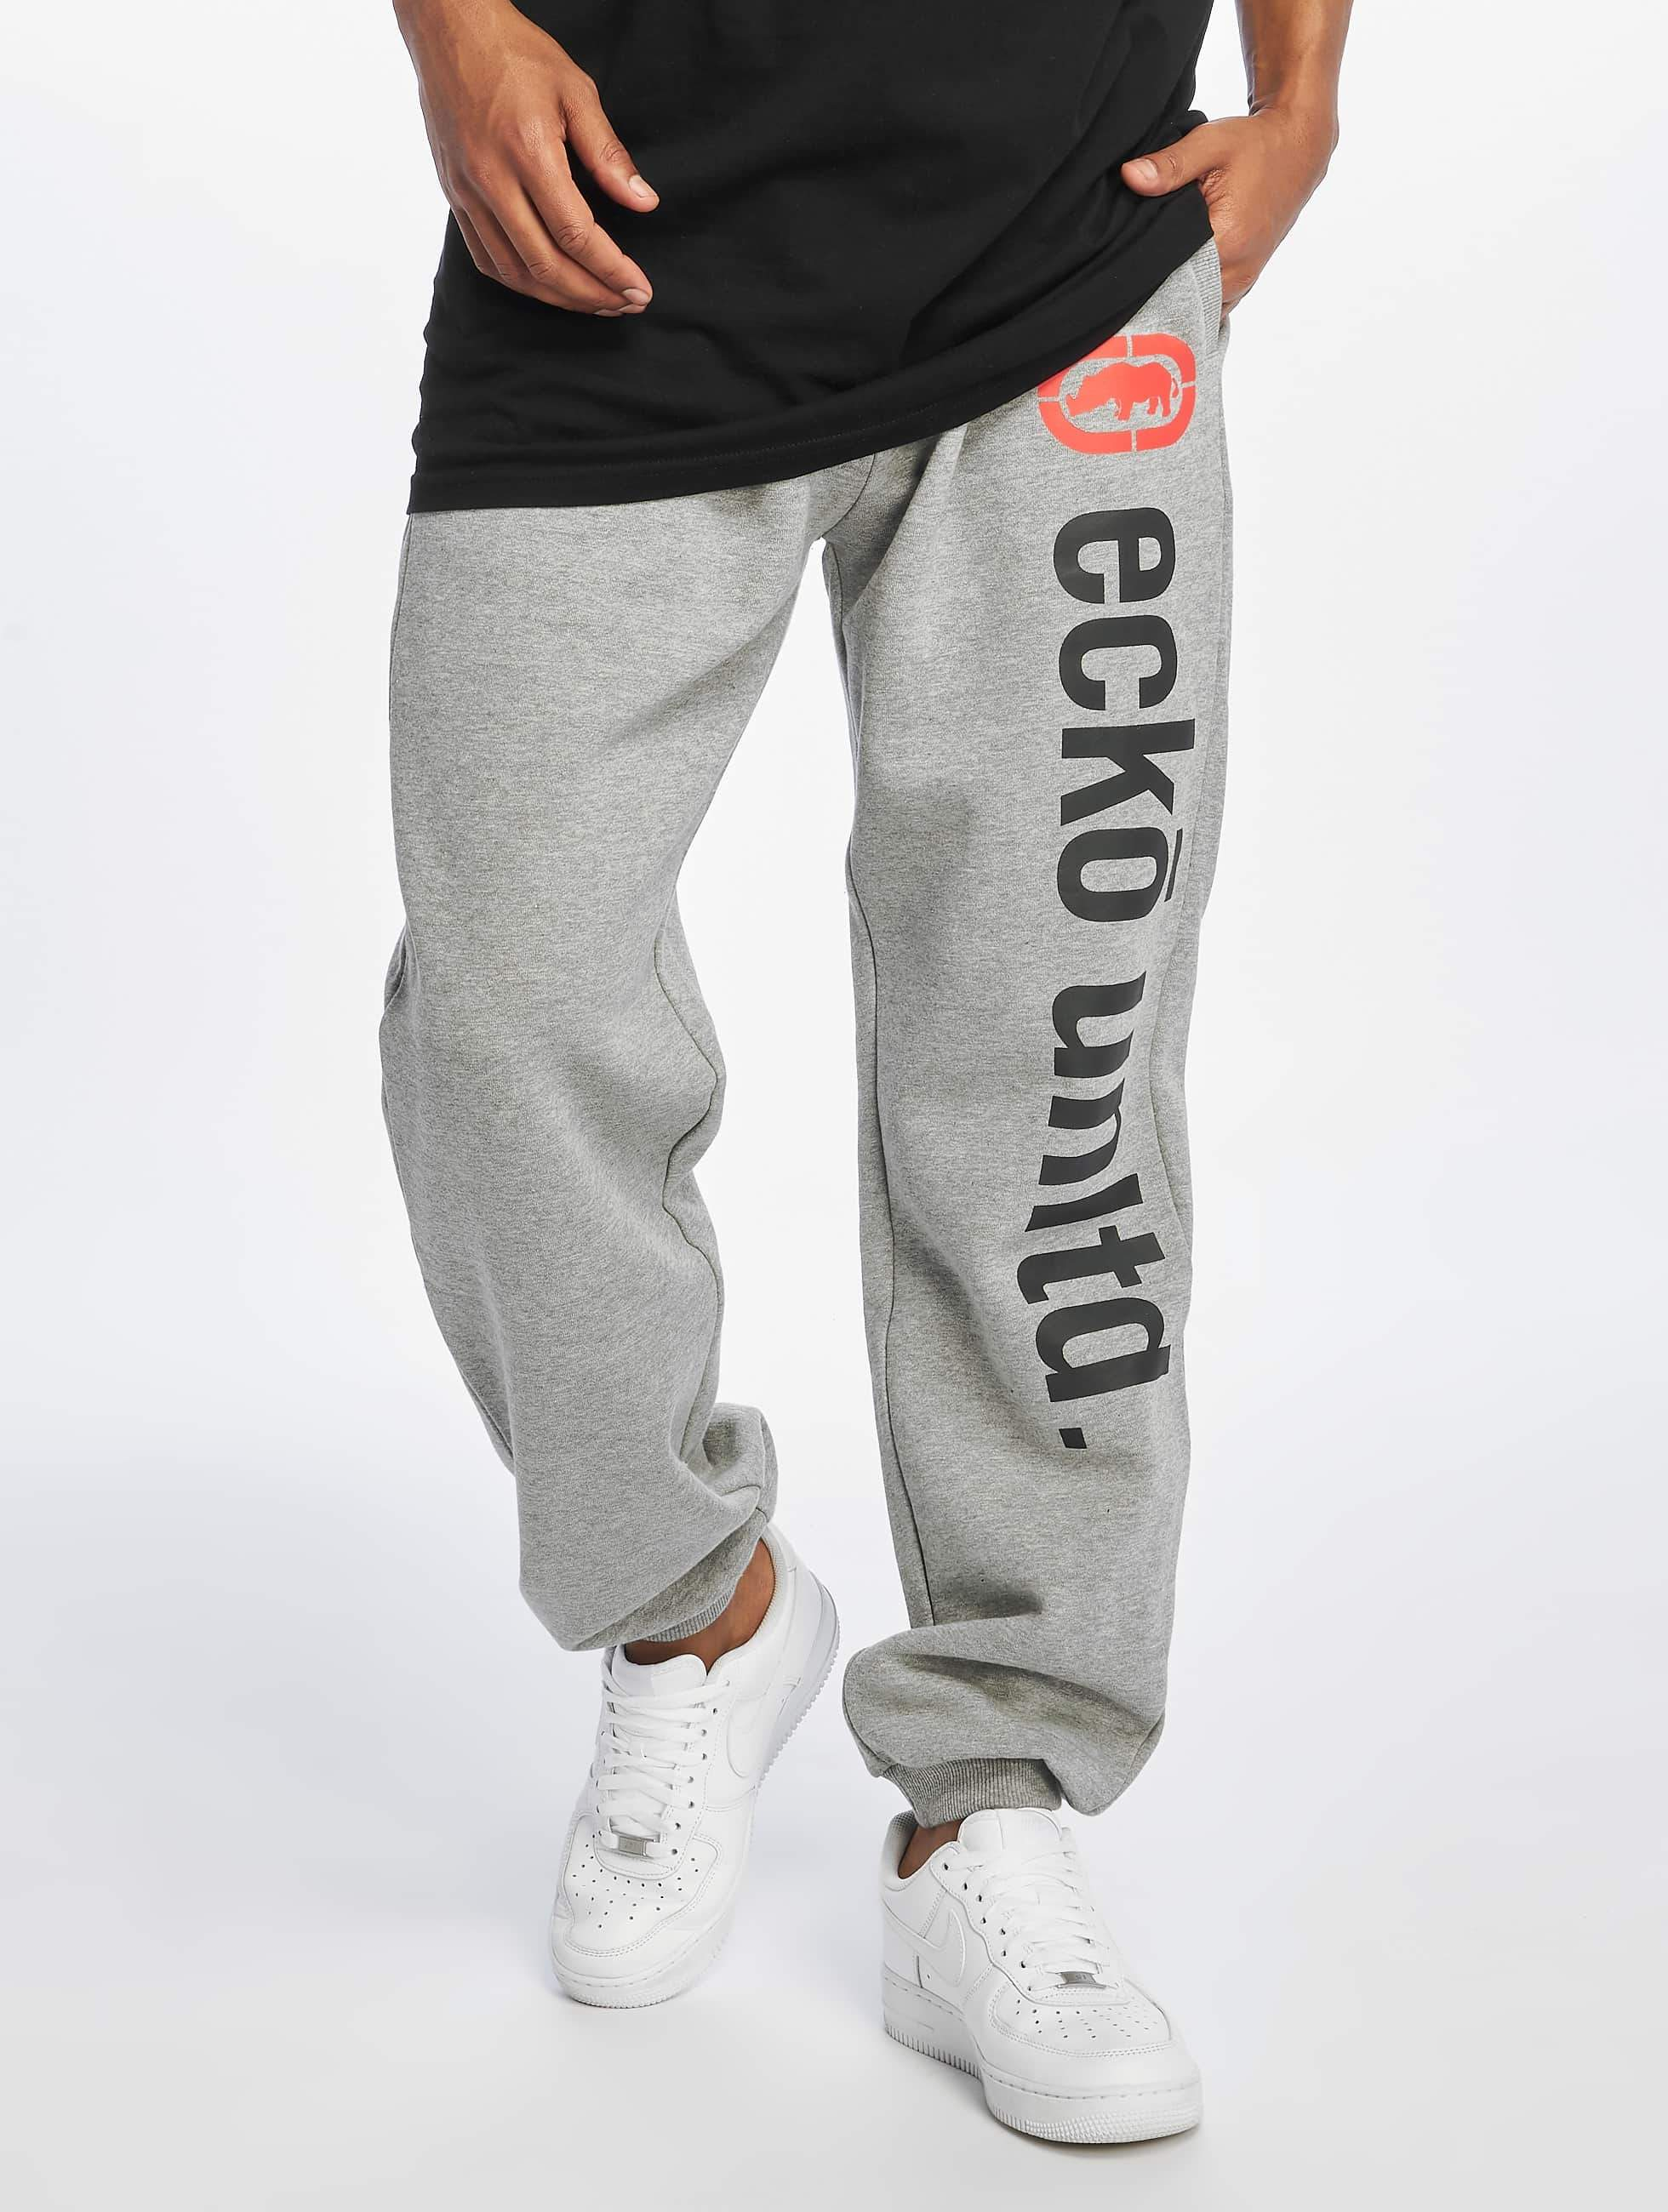 Ecko Unltd. / Sweat Pant 2Face in grey S